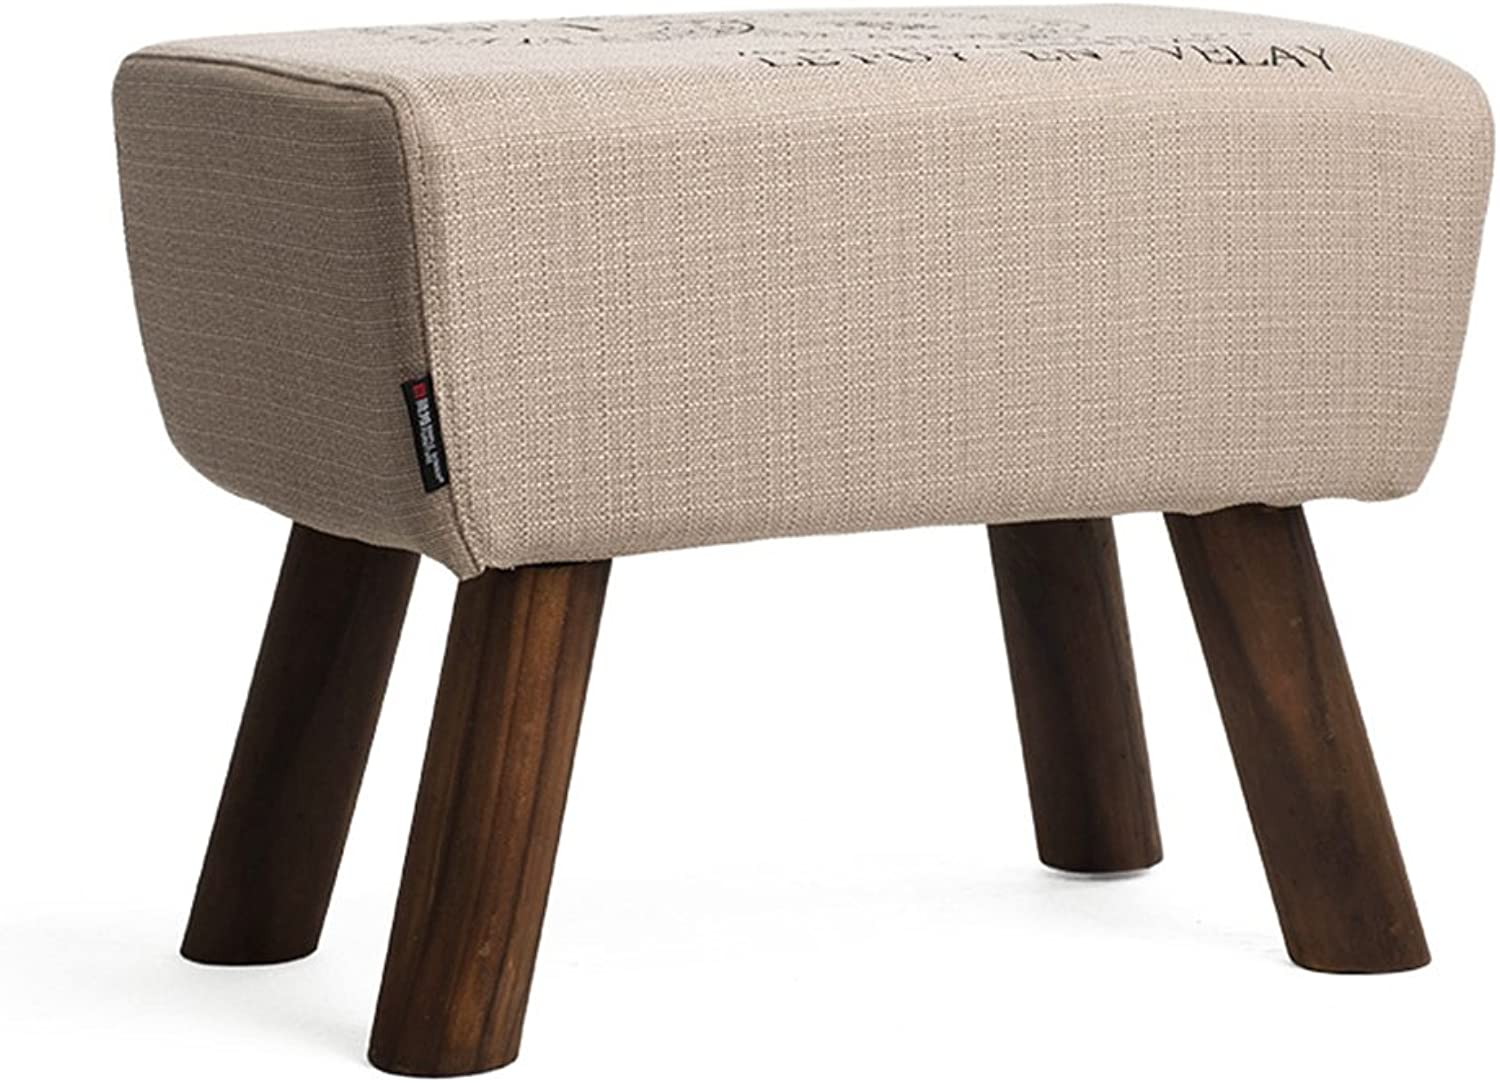 e7d2a5f9b719 Footstool-Small Stool shoes Wood Solid ZfgG Stool B) (color H40cm ...